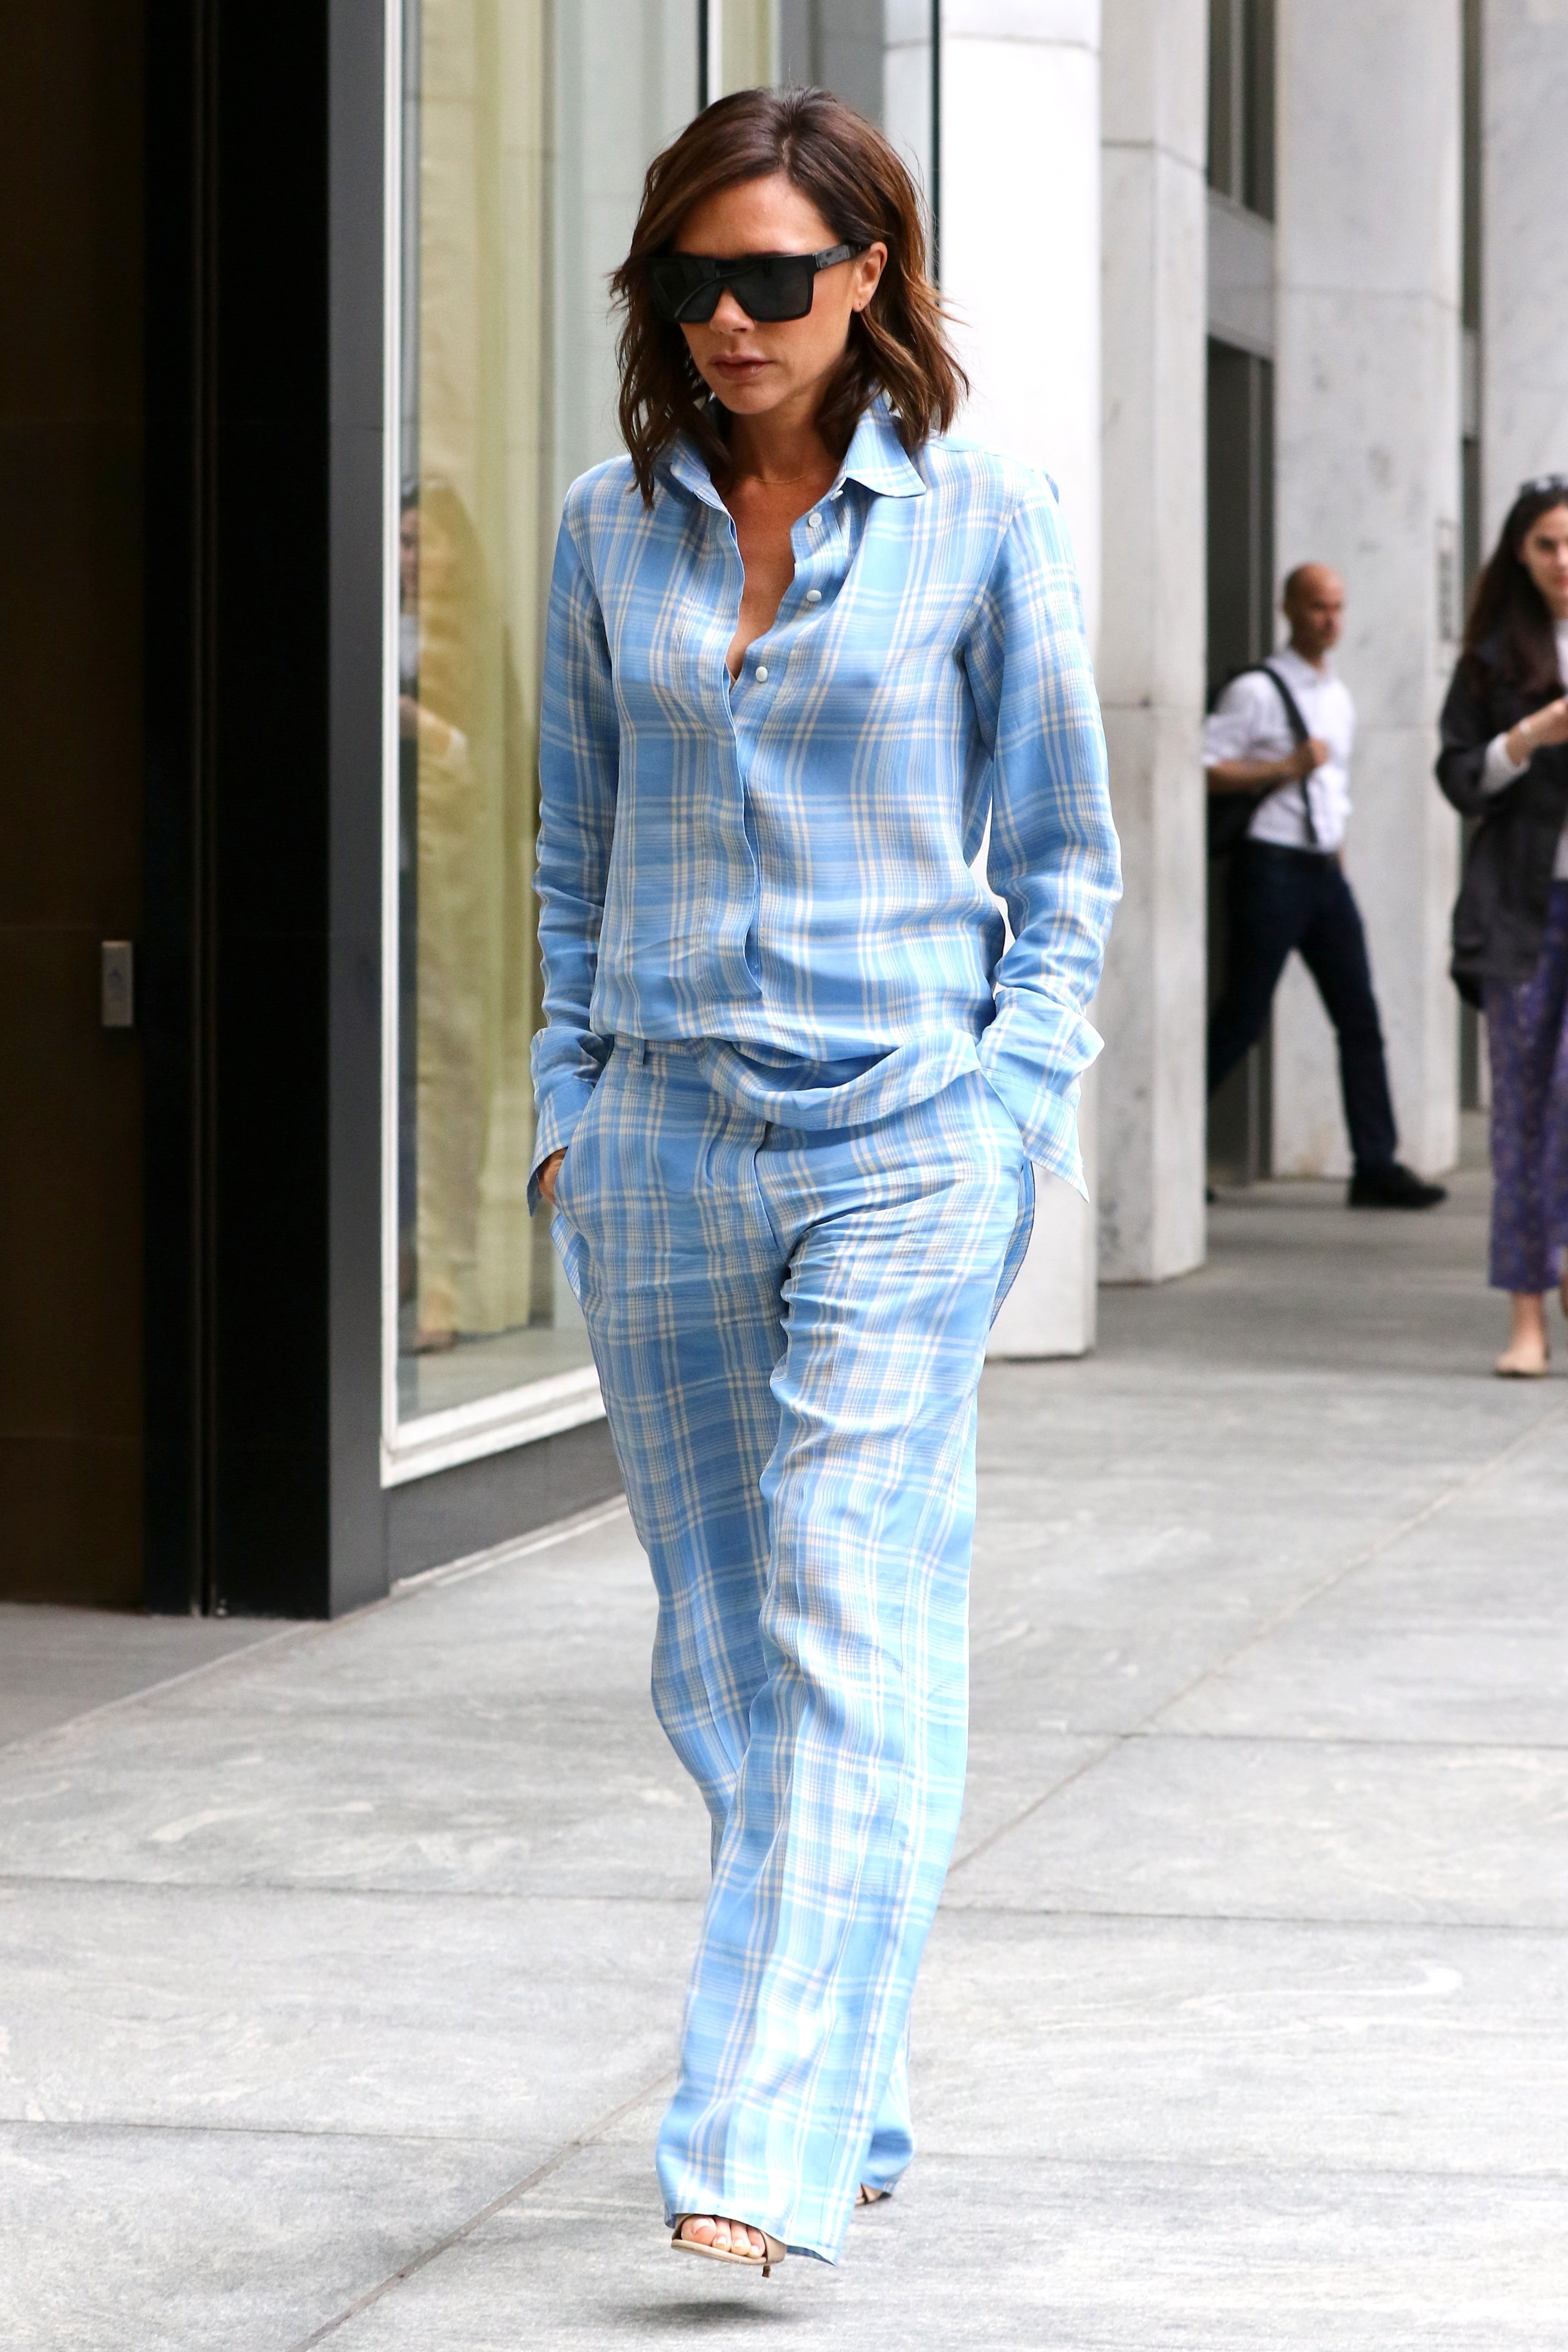 New York, NY  - Victoria Beckham struts her stuff after attending a business meeting in Manhattan today.  The former singer turned fashion designer rocked a trendy blue plaid shirt with matching trousers for today's look.  Pictured: Victoria Beckham  BACKGRID USA 7 JUNE 2017   USA: +1 310 798 9111 / usasales@backgrid.com  UK: +44 208 344 2007 / uksales@backgrid.com  *UK Clients - Pictures Containing Children Please Pixelate Face Prior To Publication*, Image: 335615791, License: Rights-managed, Restrictions: , Model Release: no, Credit line: Profimedia, AKM-GSI